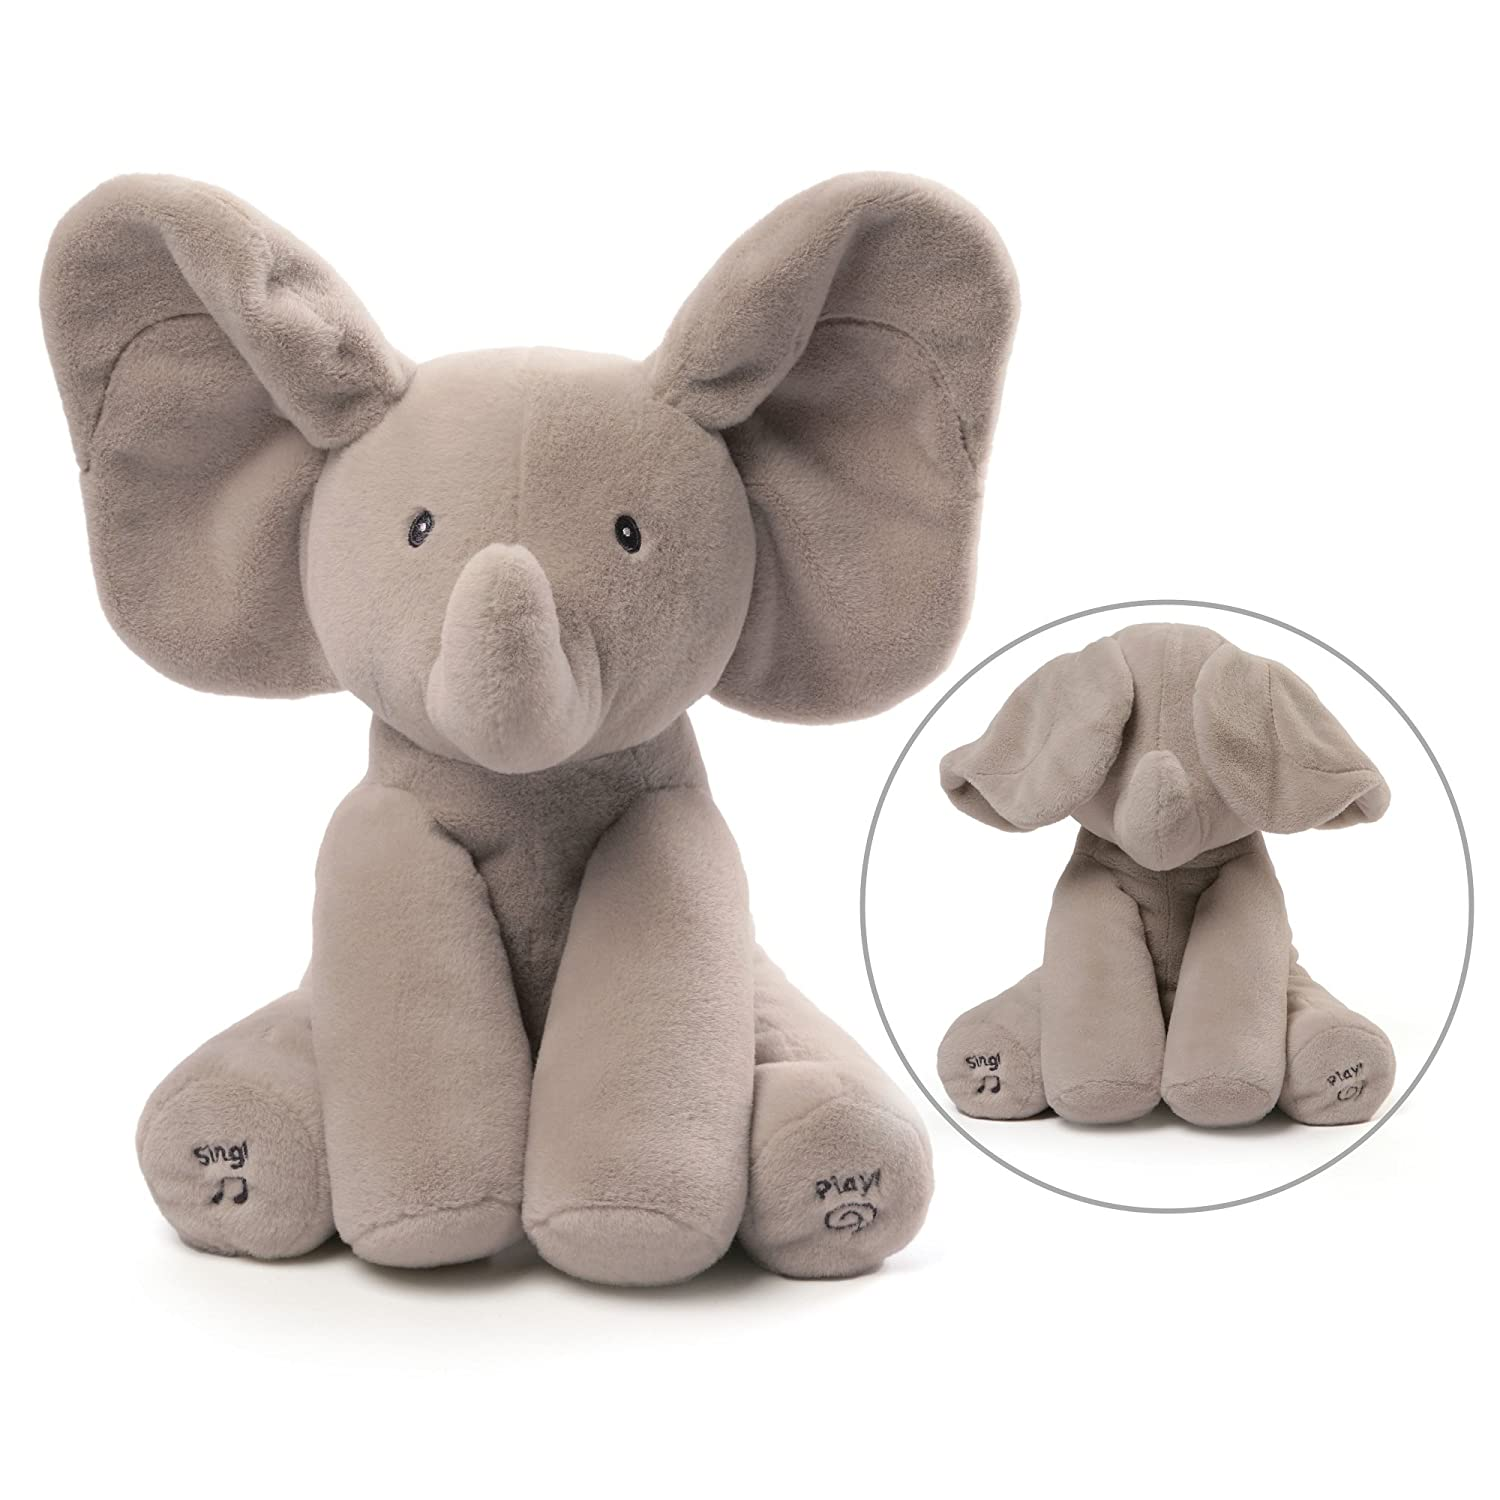 Top 9 Best Cute Stuffed Animals Reviews in 2019 7